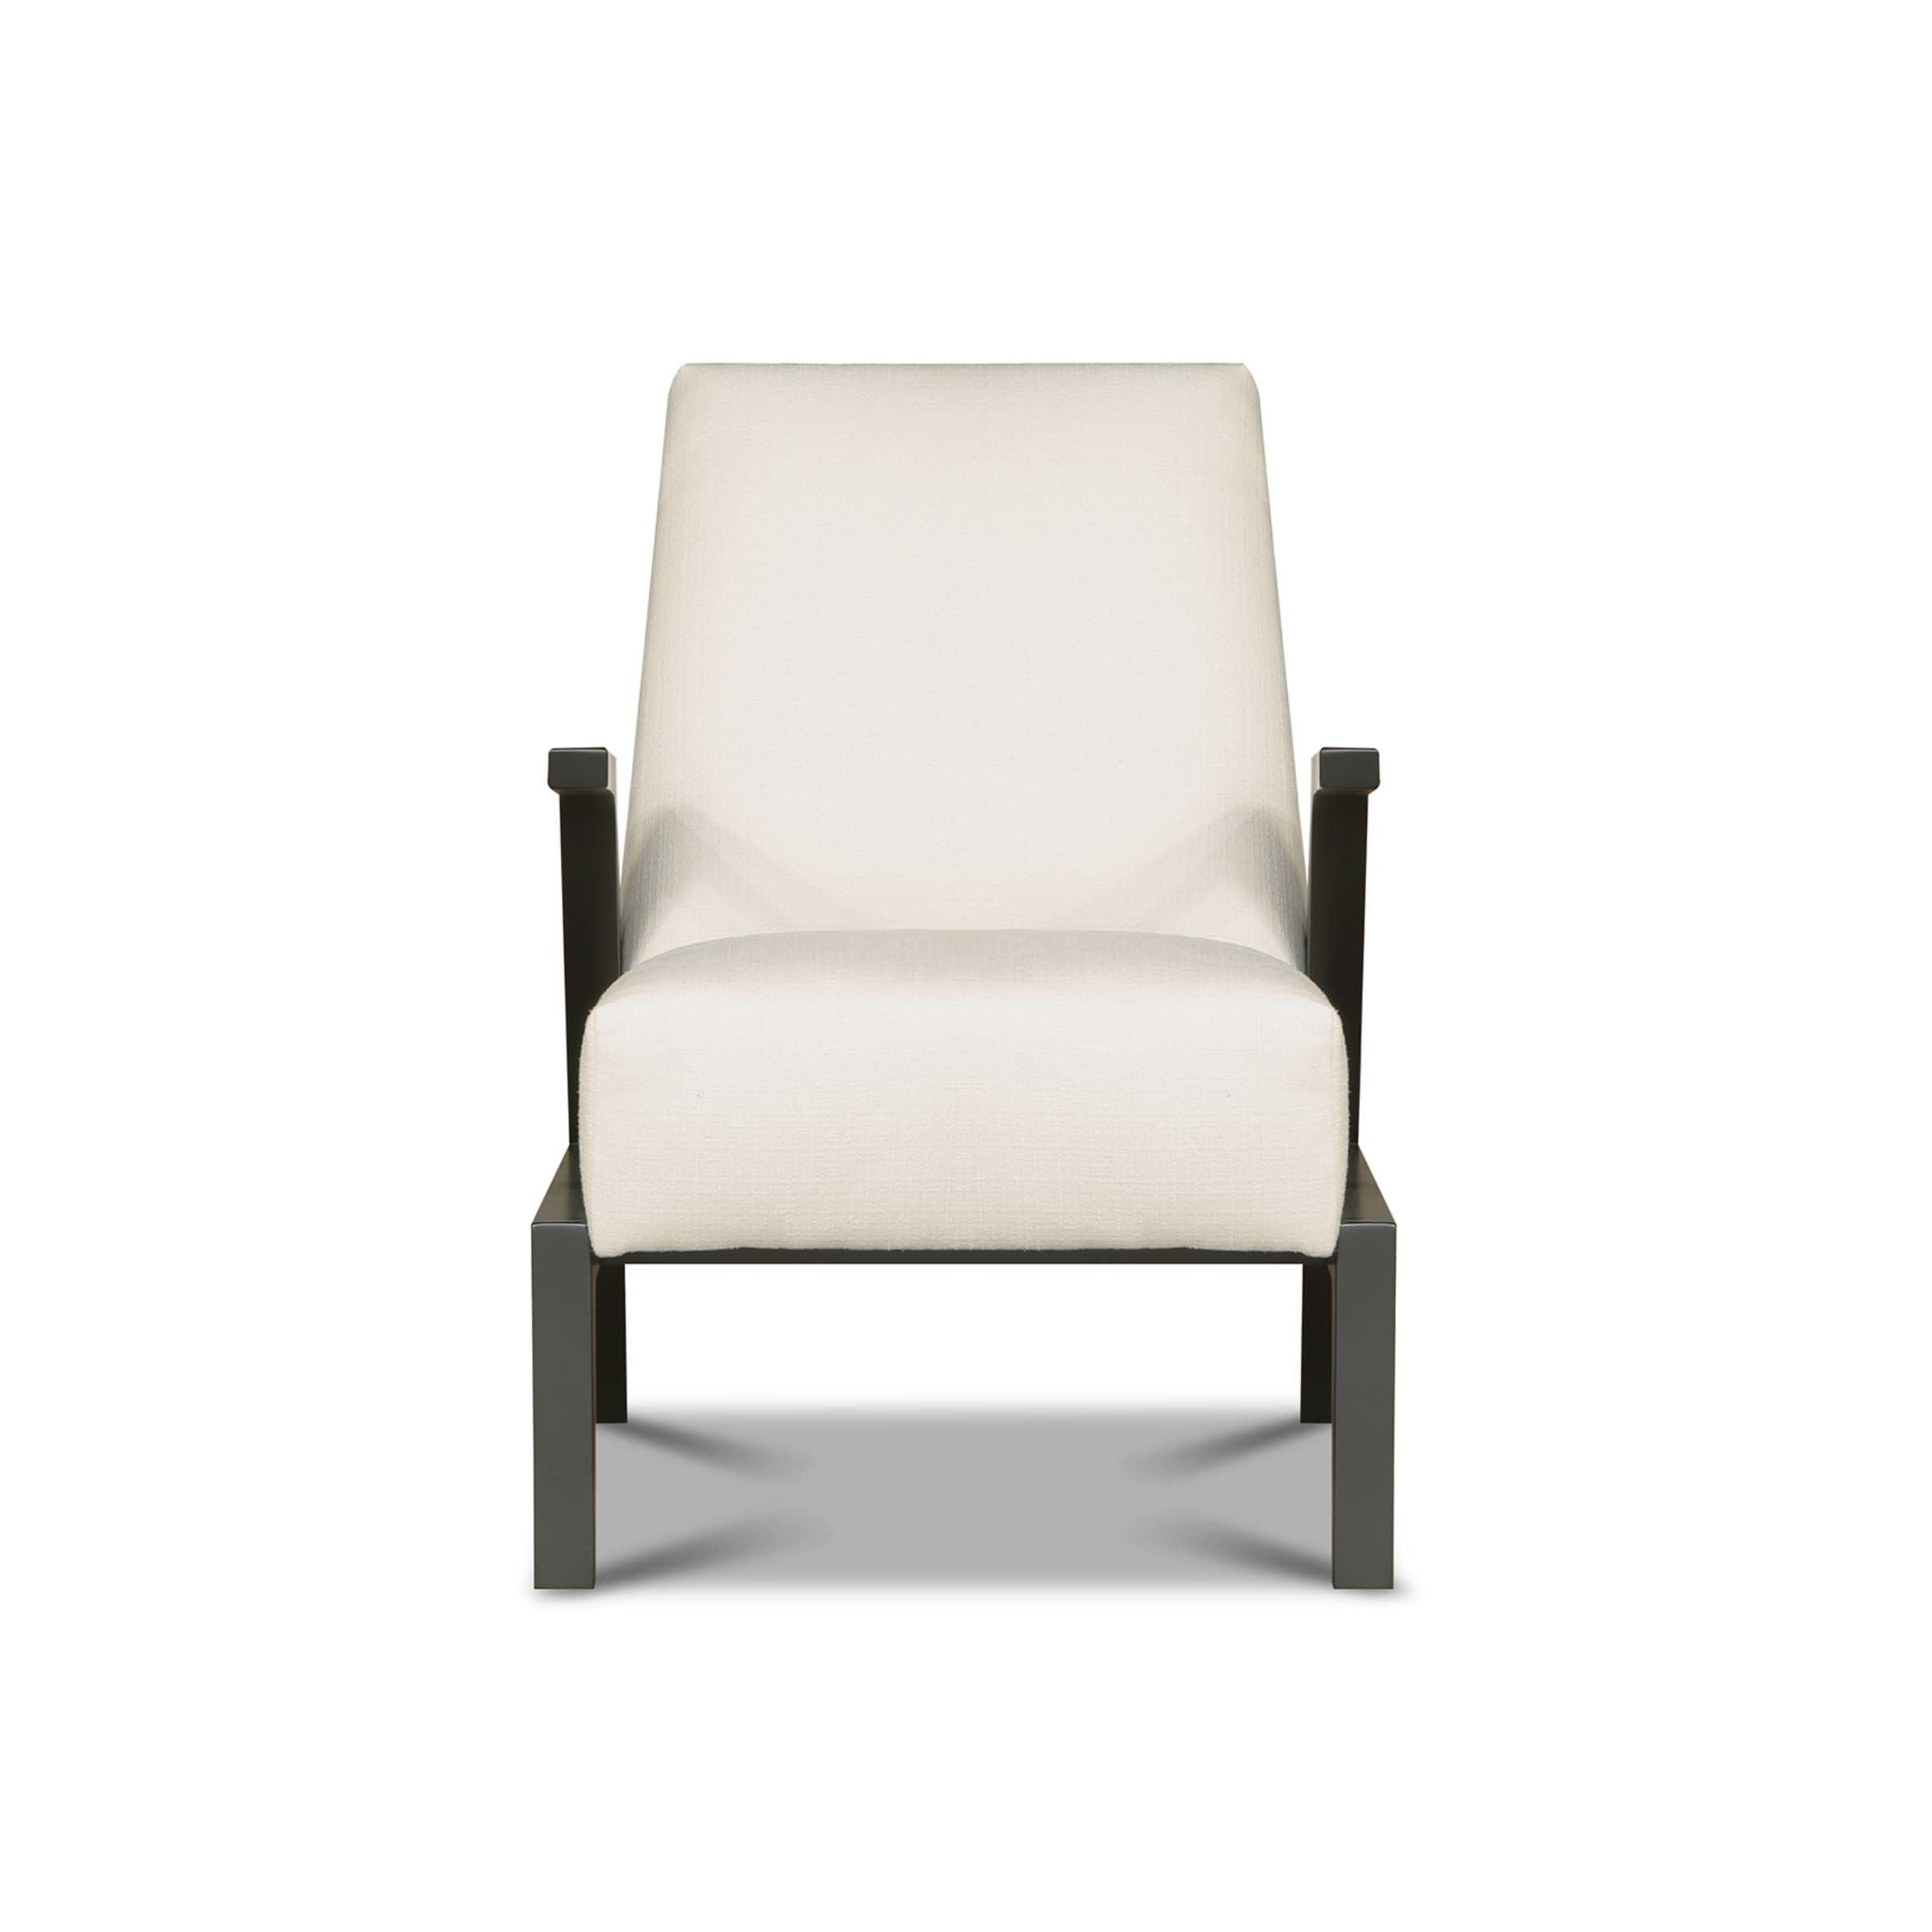 SWING - 1E Accent chair Rodez Cream